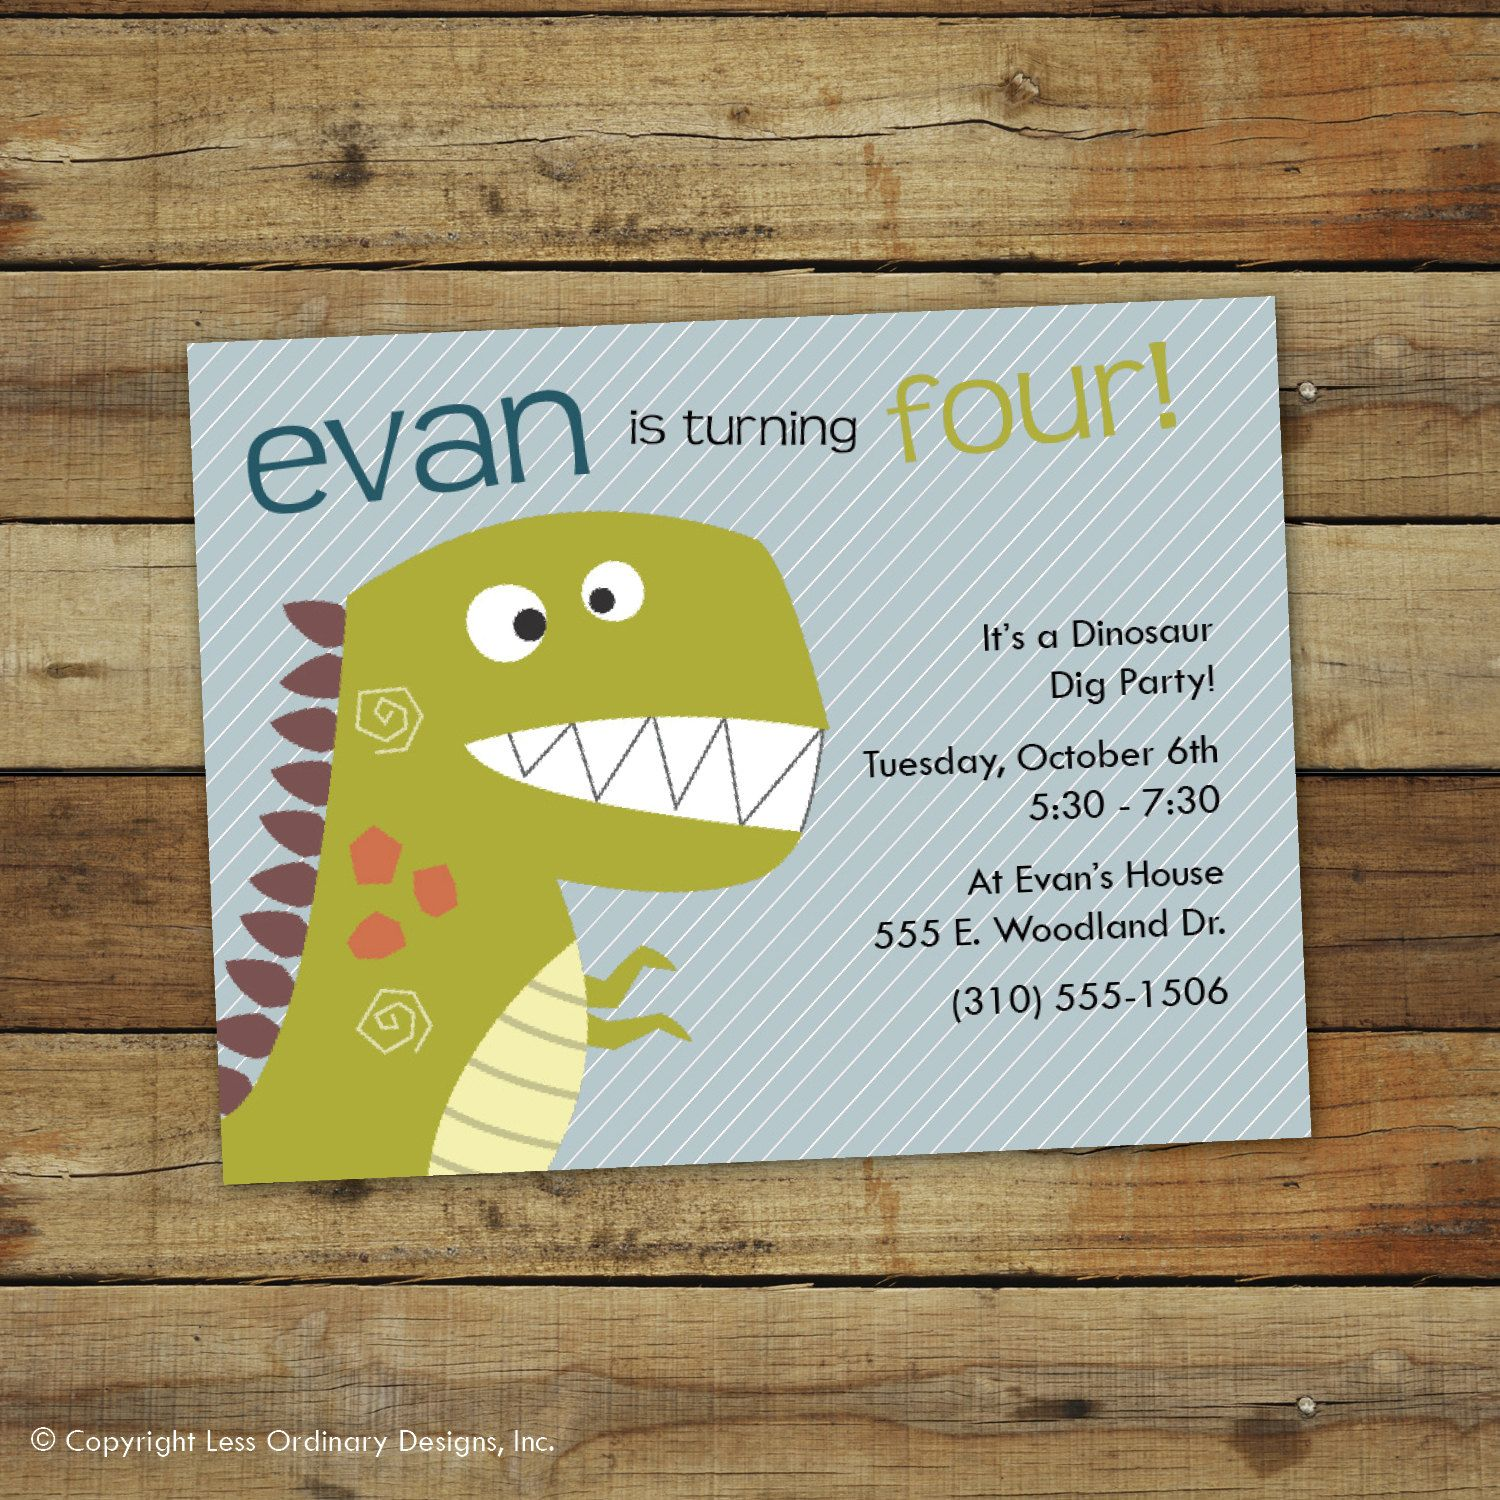 Tremendous Cute Dinosaur Party Invitations Birthday Party Invitation